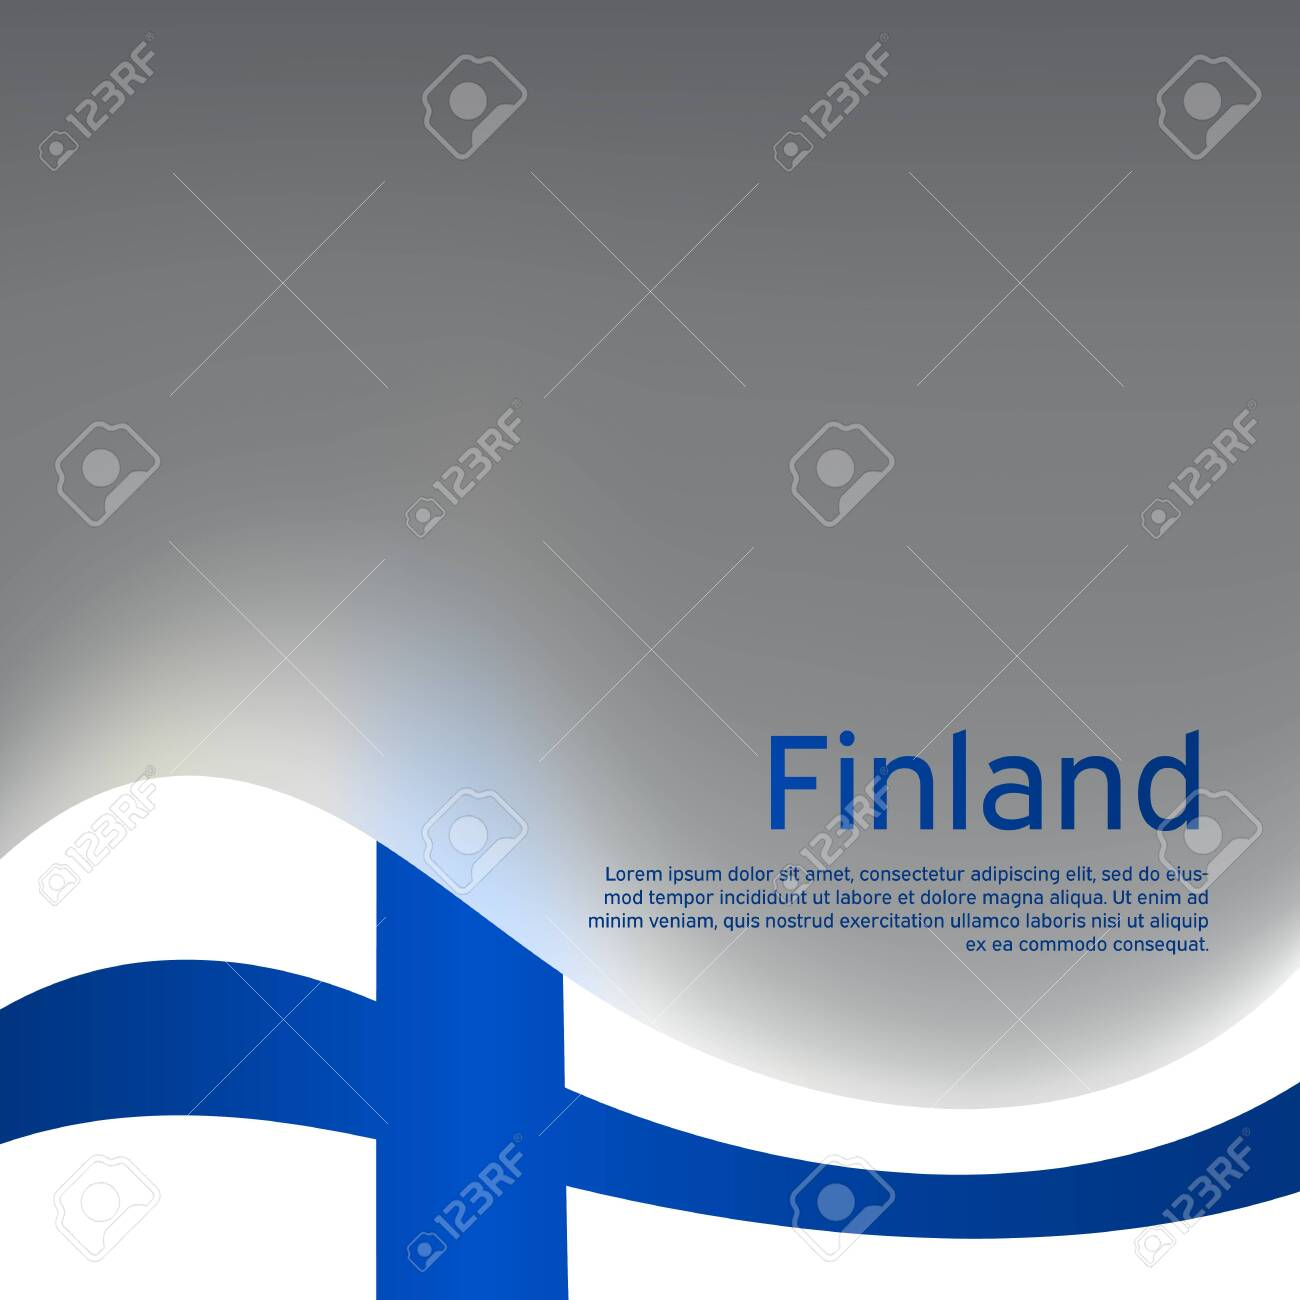 Finland wavy glowing flag on a gray glossy background. National poster design. State Finnish patriotic banner, flyer. Business booklet. Vector illustration - 151467954